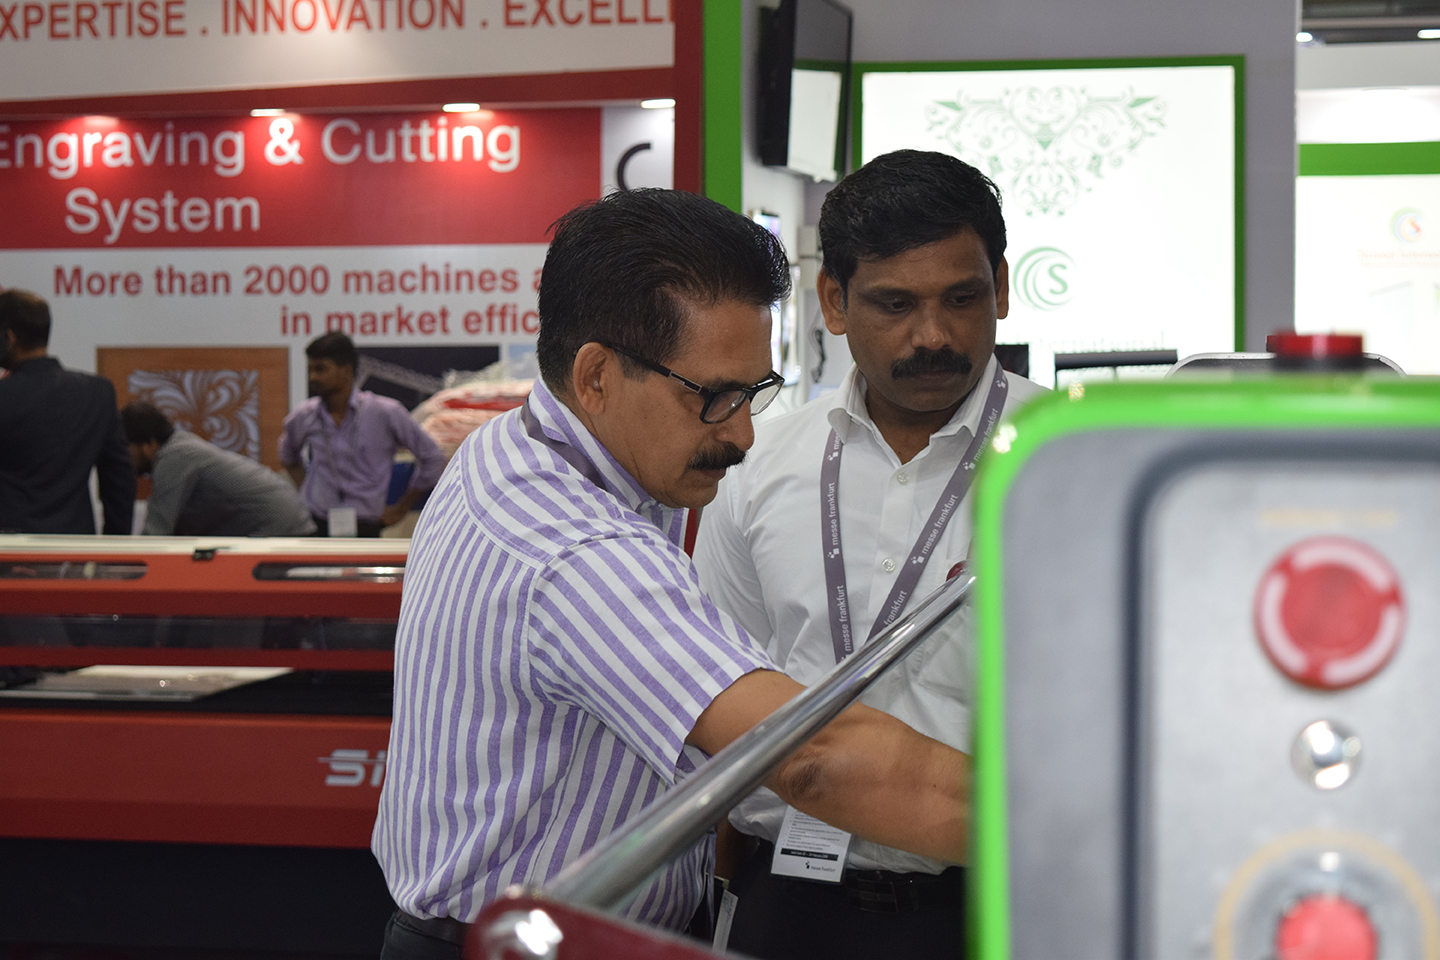 xljet lamination machine, lamination machines, b&r digitals, media expo, rajeev bhaskaran